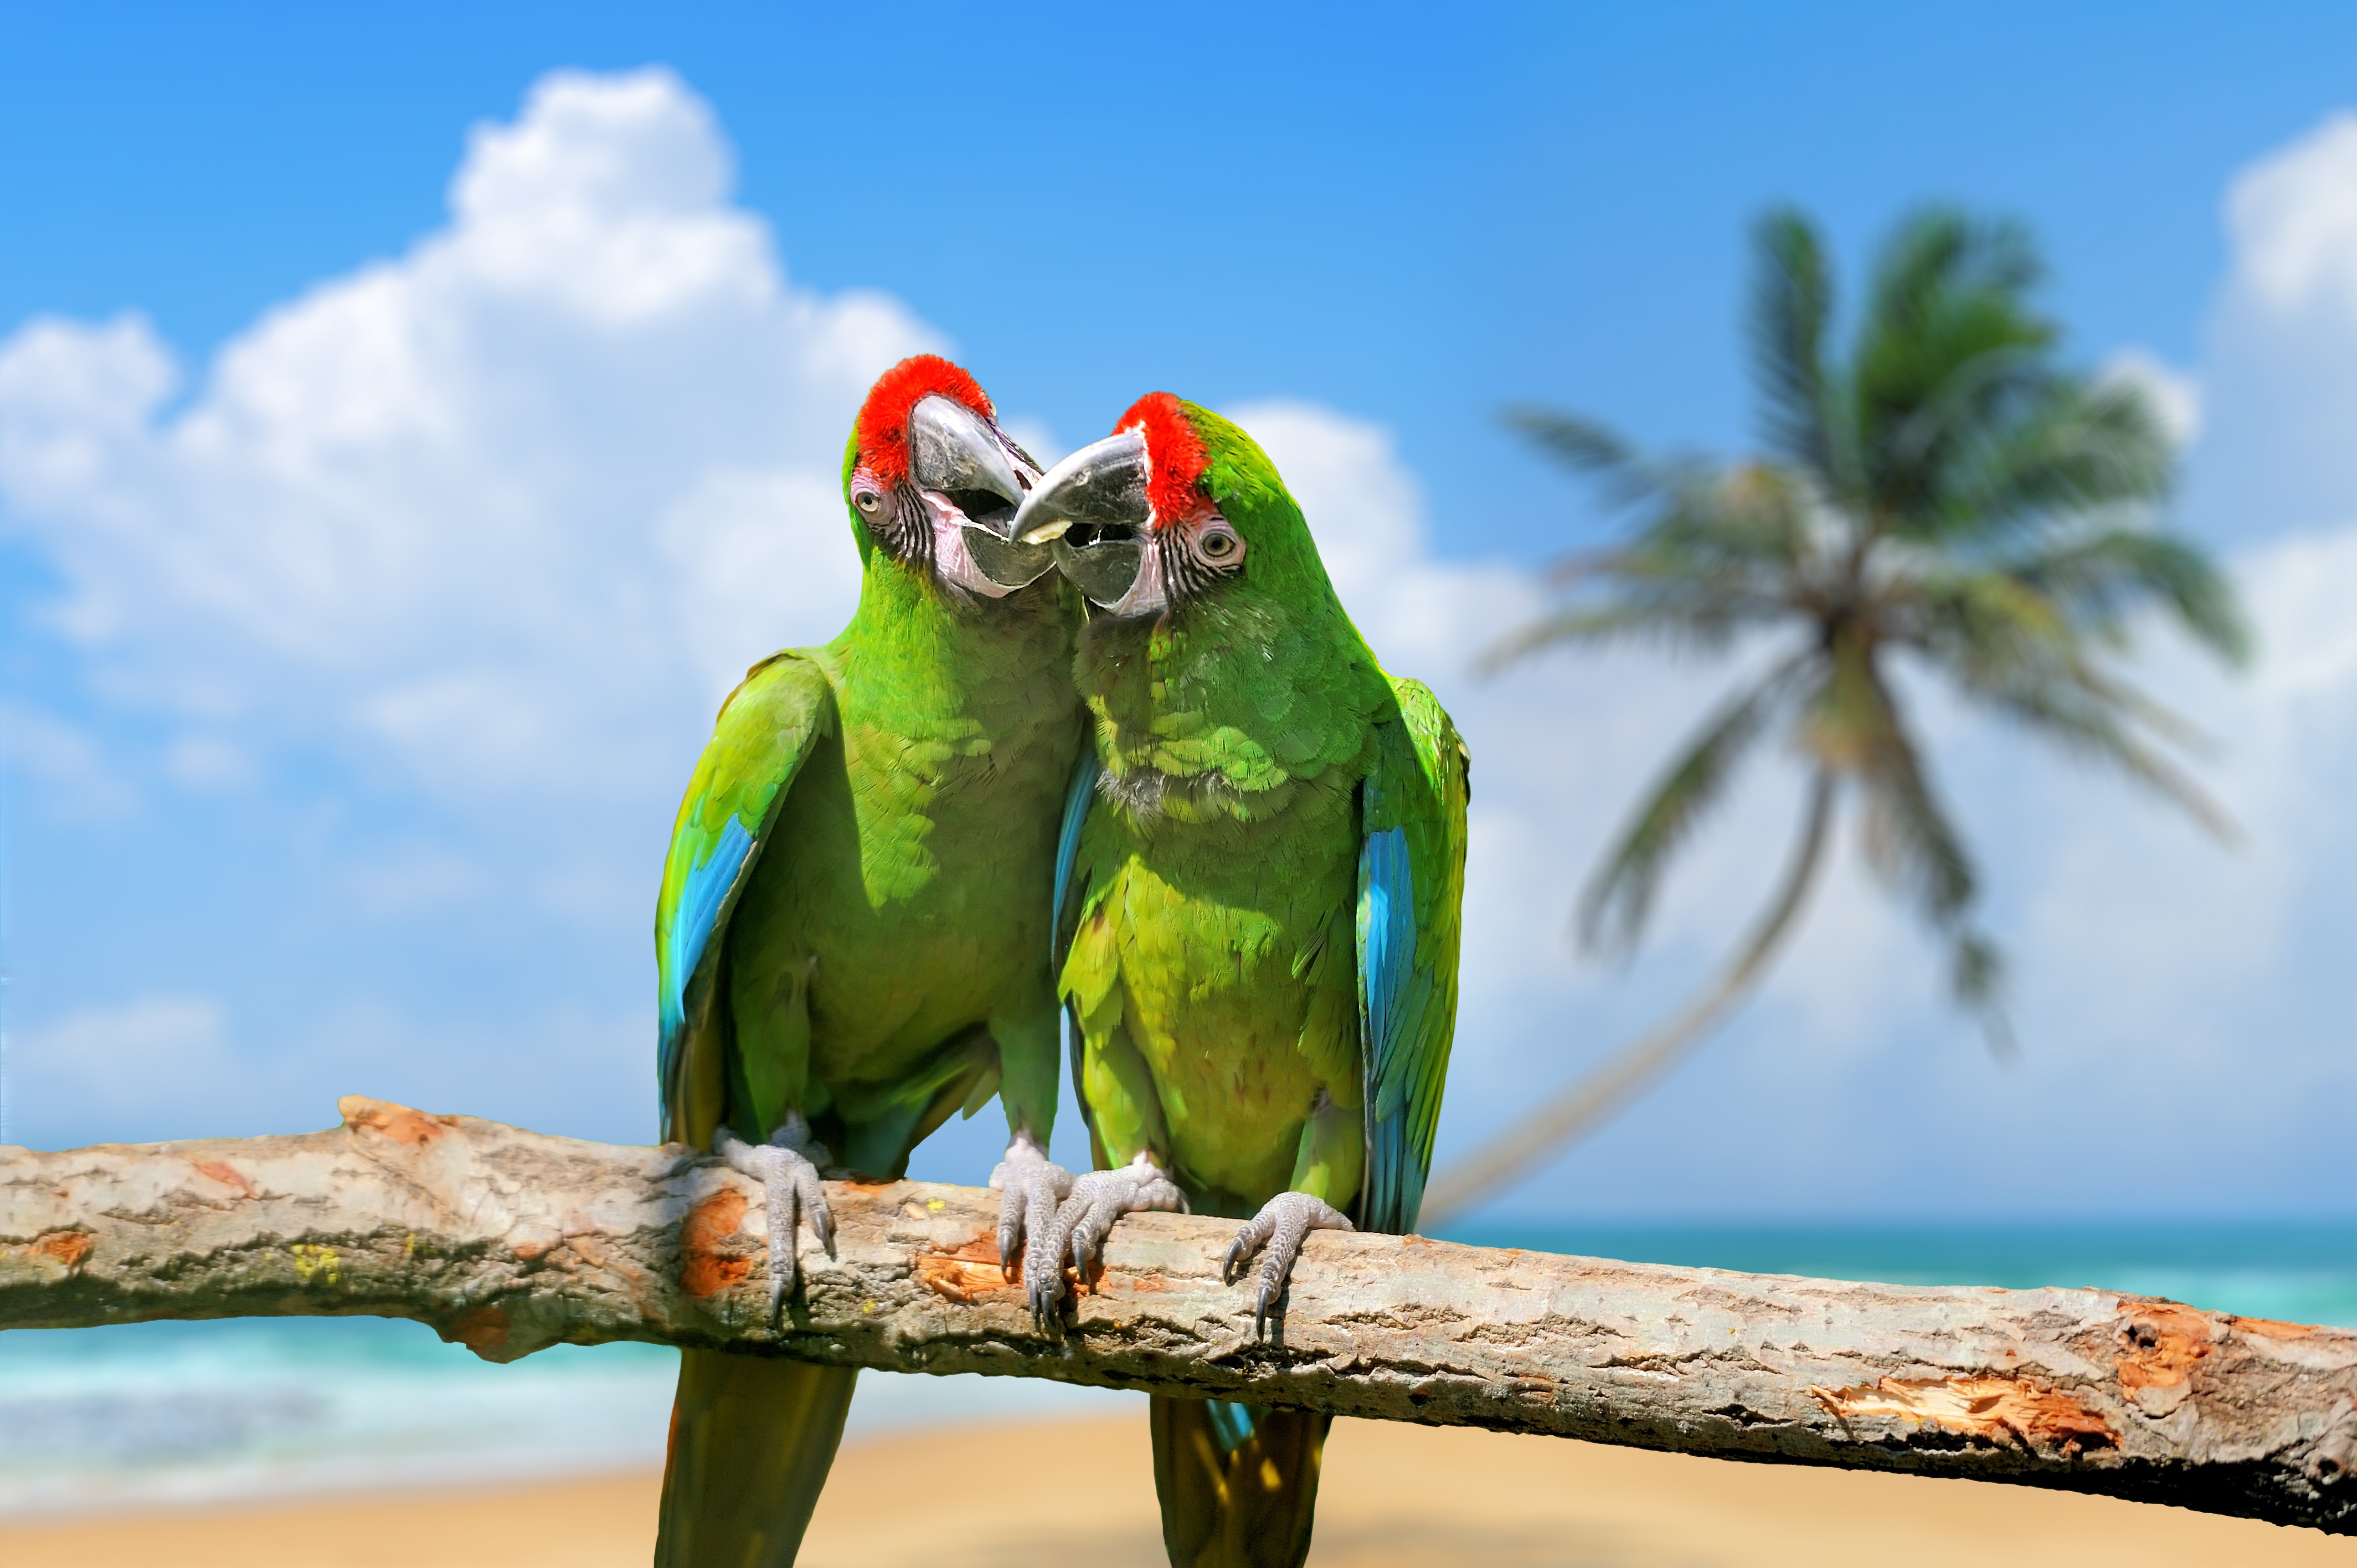 Into The Wild Quotes Wallpaper Wallpaper Parrot Plumage Branch Exotic Birds Green